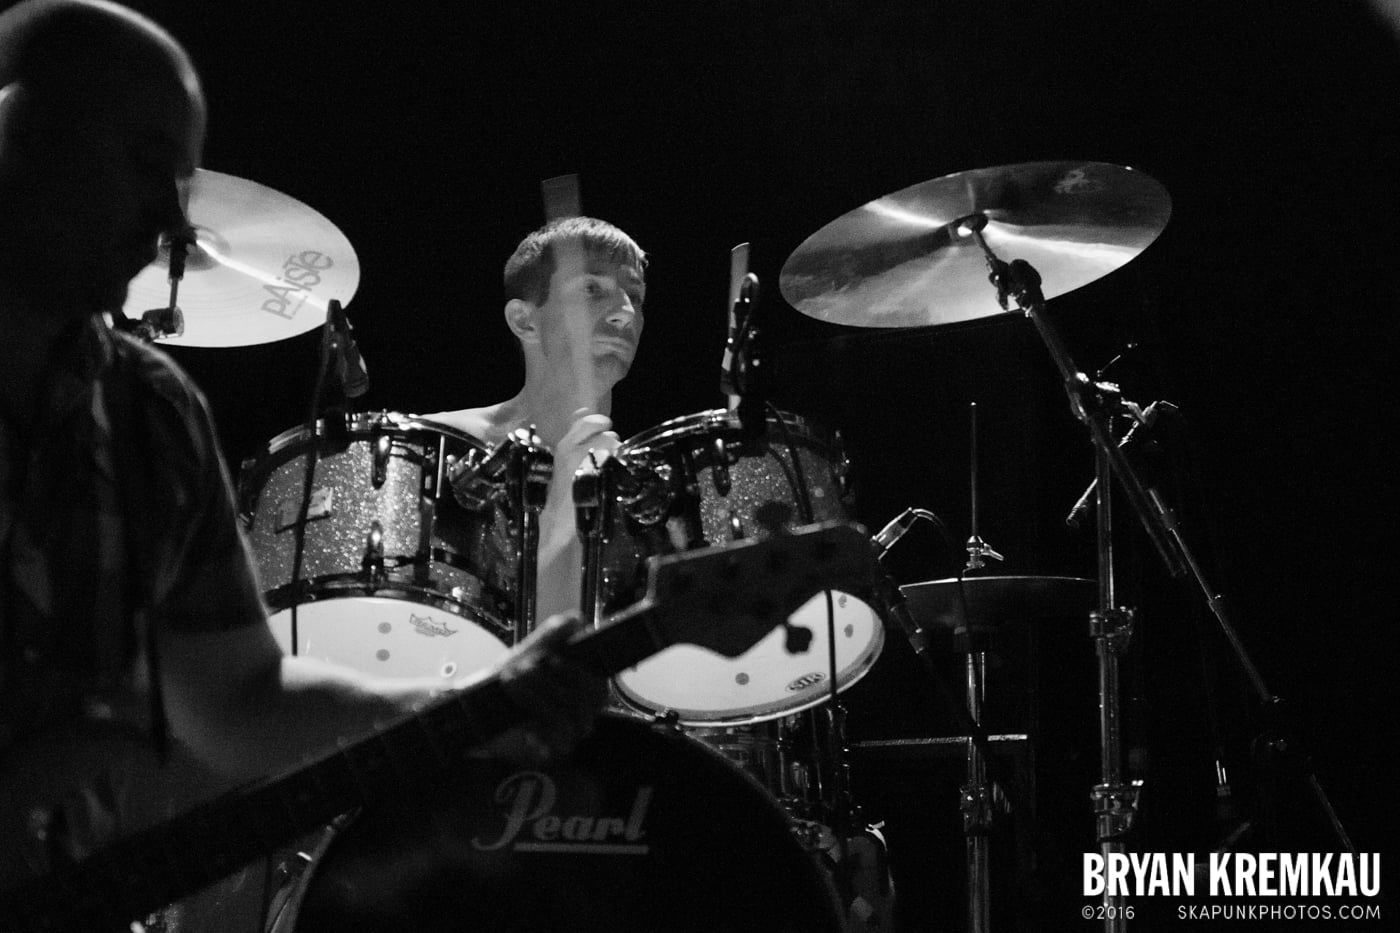 Thumper @ Apple Stomp: Day 2, Irving Plaza, NYC - June 1st 2013 - Bryan Kremkau (4)